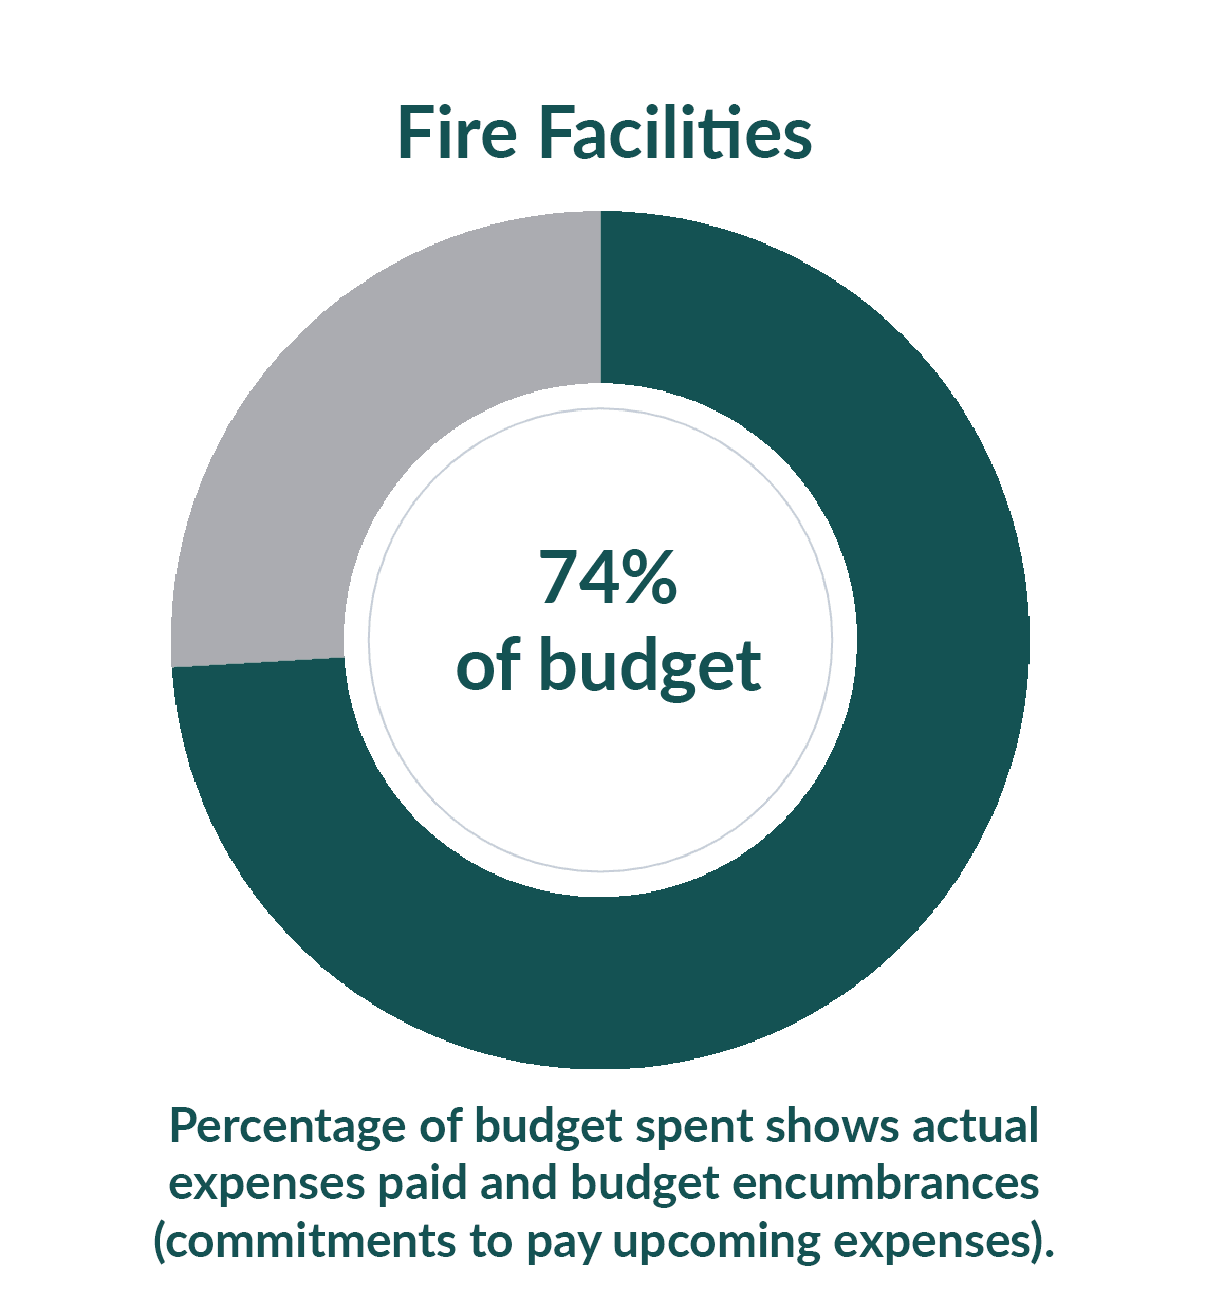 Fire Facilities: 18.1% of budget used